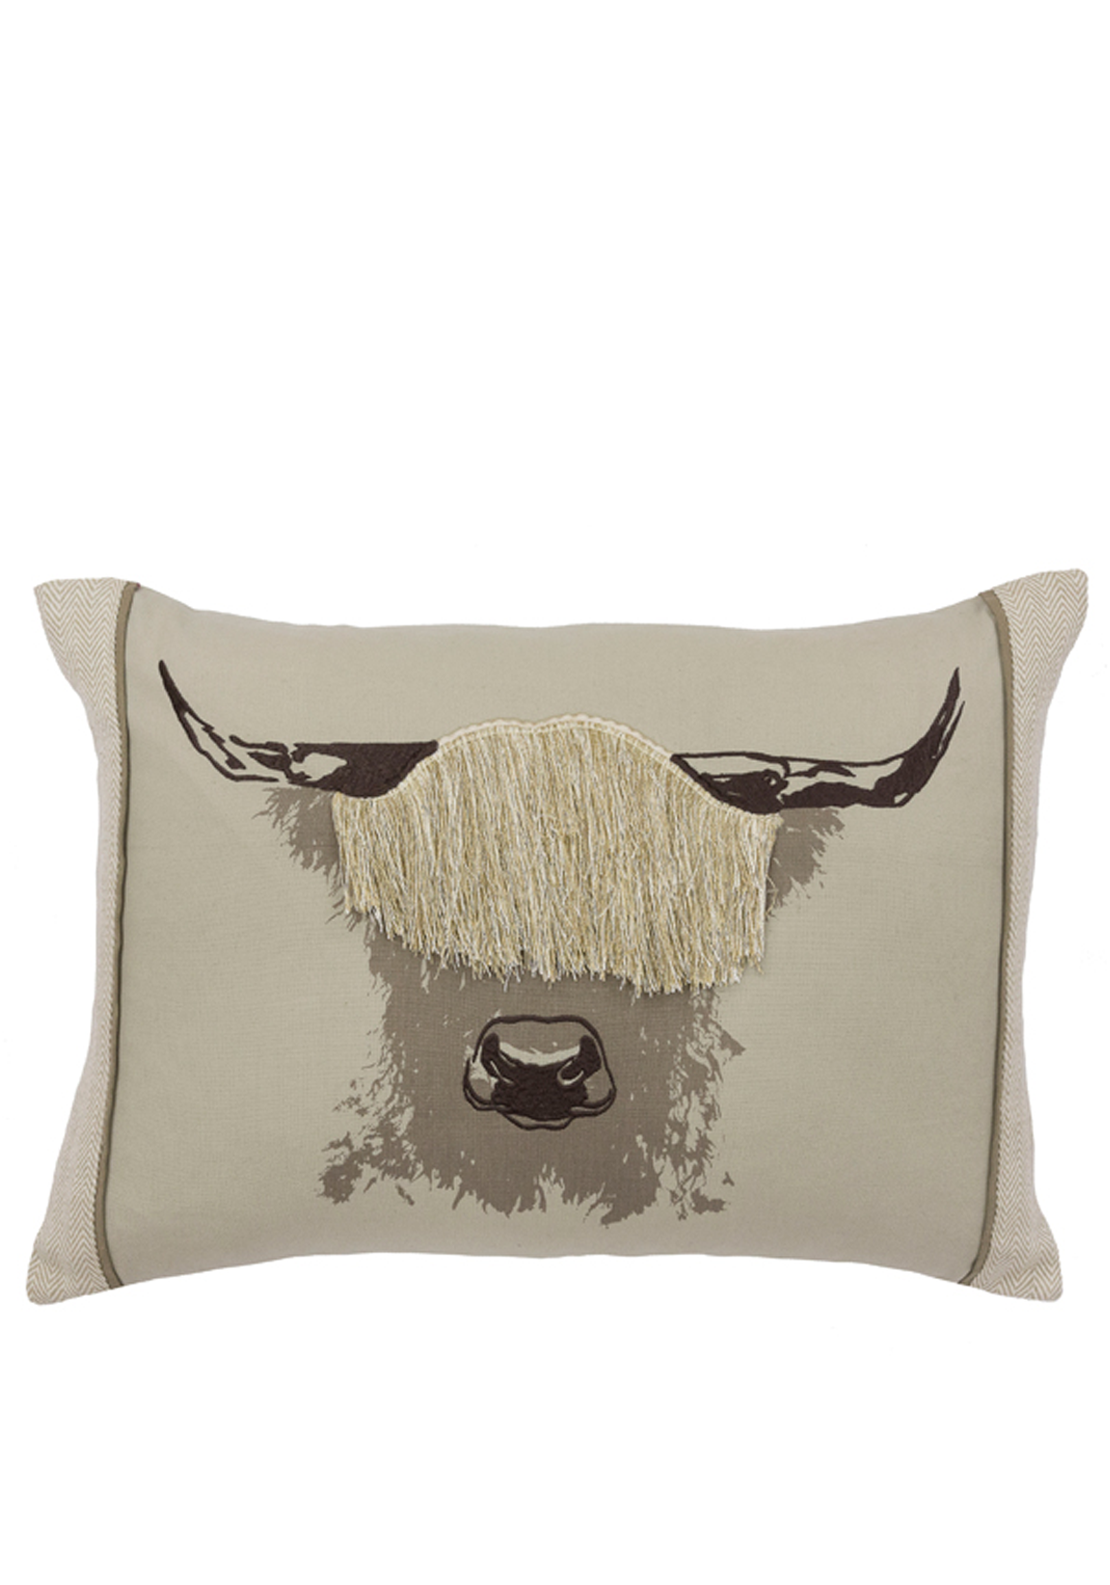 Scatterbox Angus 3D Bull Feather Filled Cushion, 35 x 50cm Beige